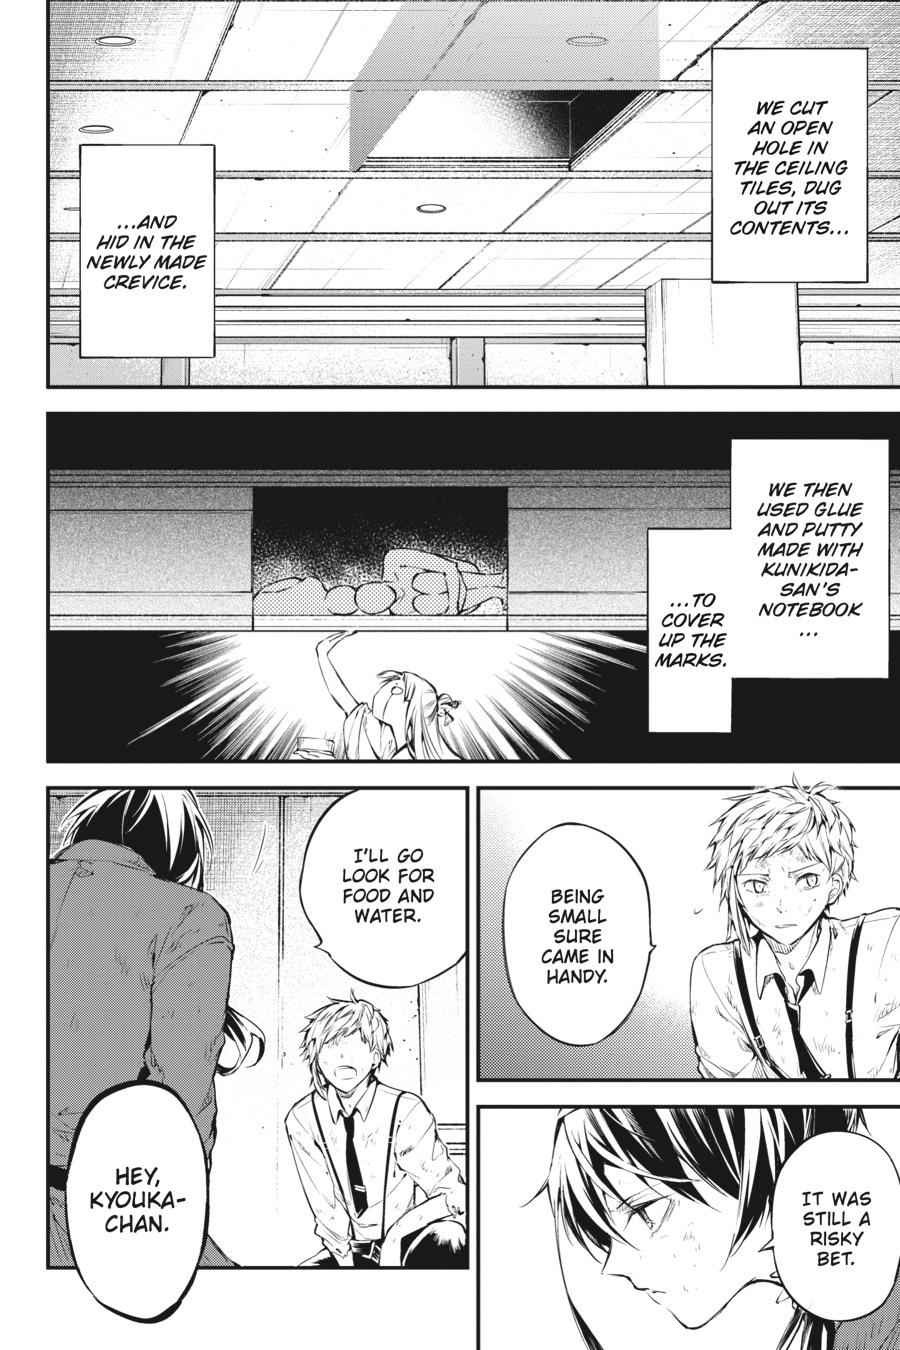 Bungou Stray Dogs Chapter 63 Page 4